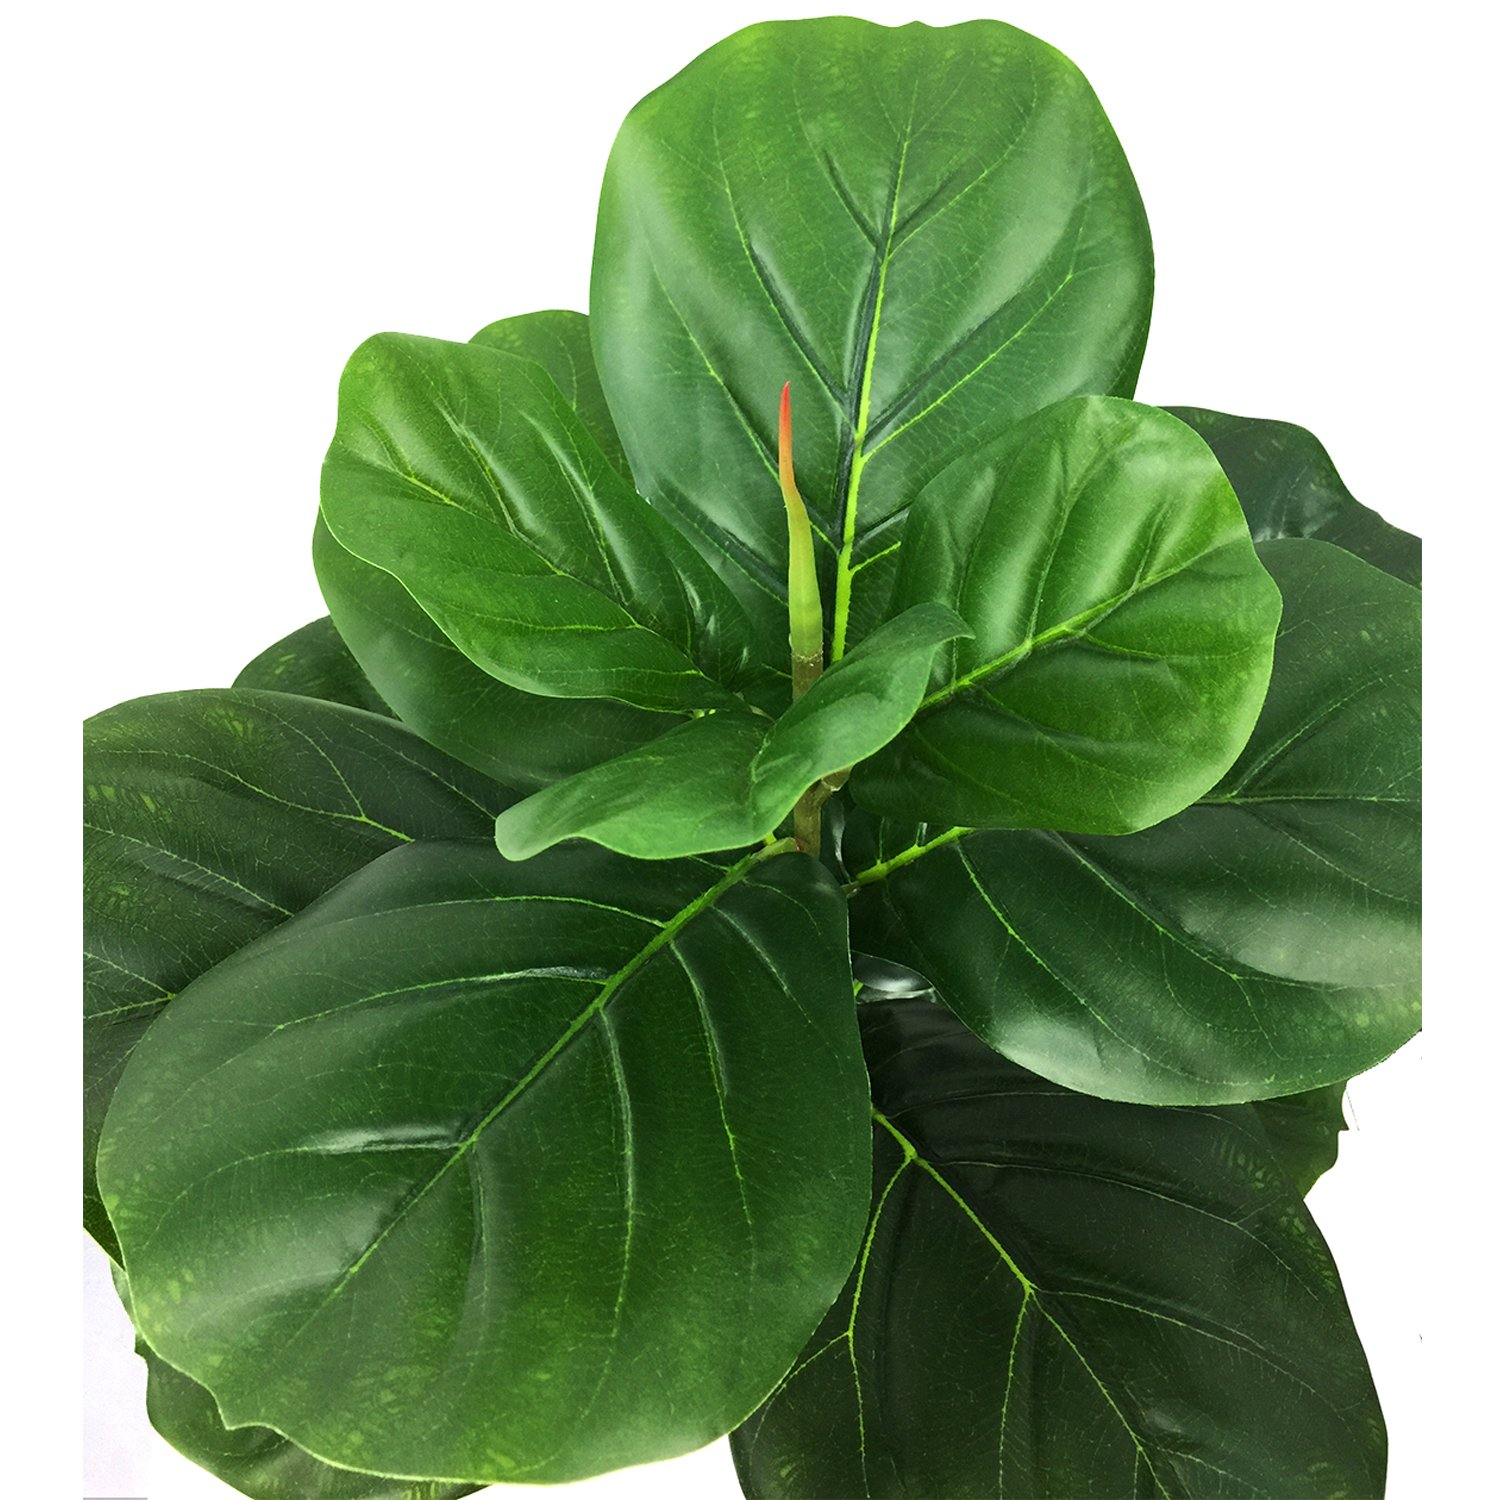 BESAMENATURE Artificial Fiddle Leaf Fig Tree, Potted Artificial Tree for Home Decor, 22'' Tall, Green 22'' Tall